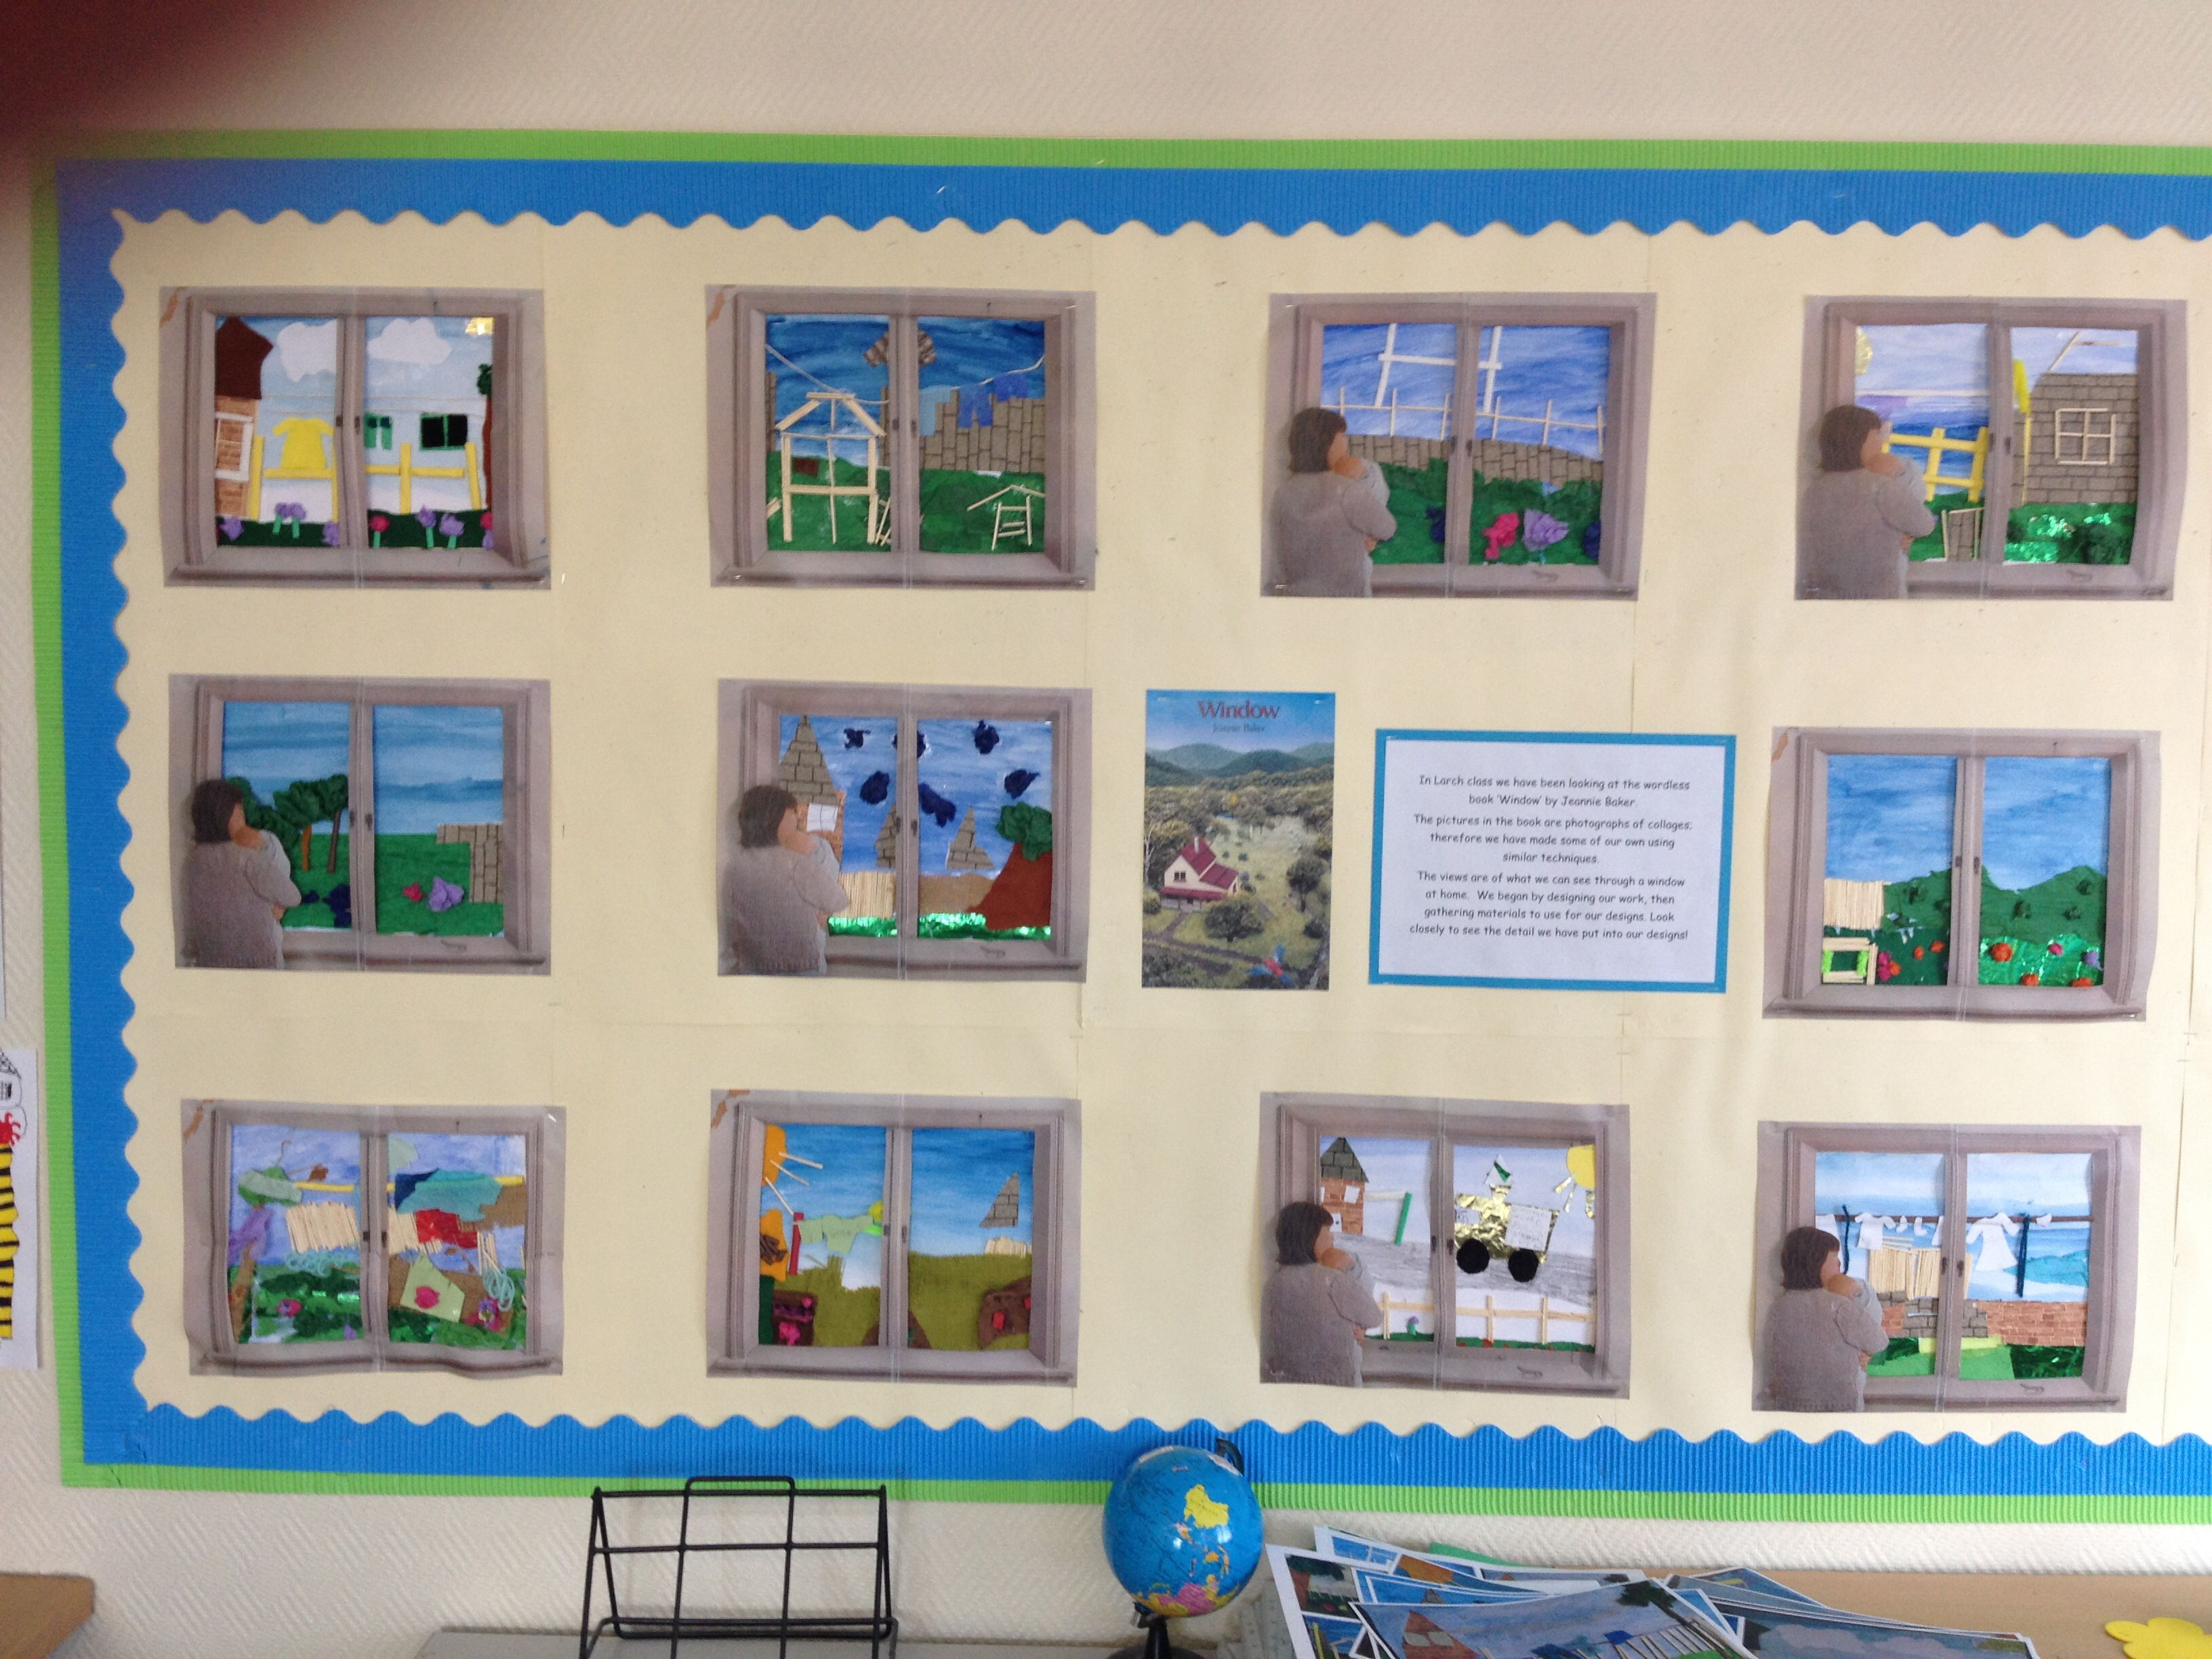 Our Beautiful Collages Based On The Book Window By